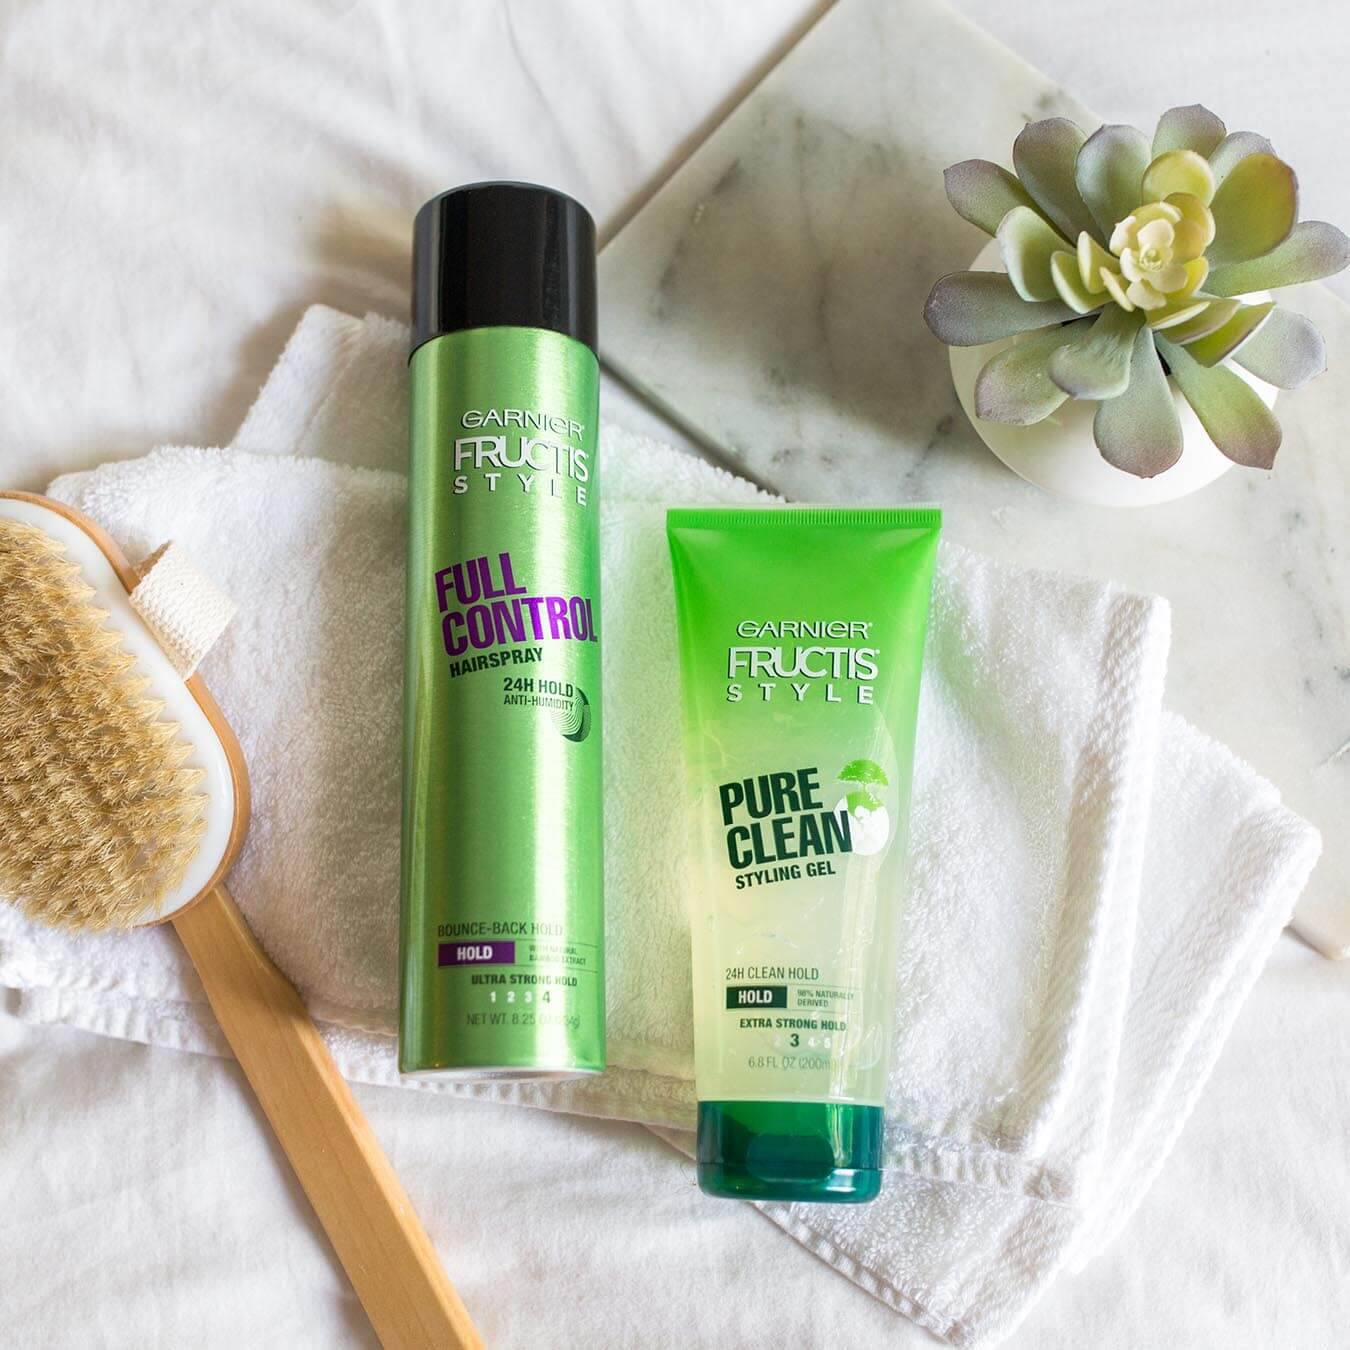 Garnier Fructis Style Full Control Hairspray and Fructis Style Pure Clean Styling Gel on two white wash cloths next to a wooden long-handled scrub brush and a potted succulent.